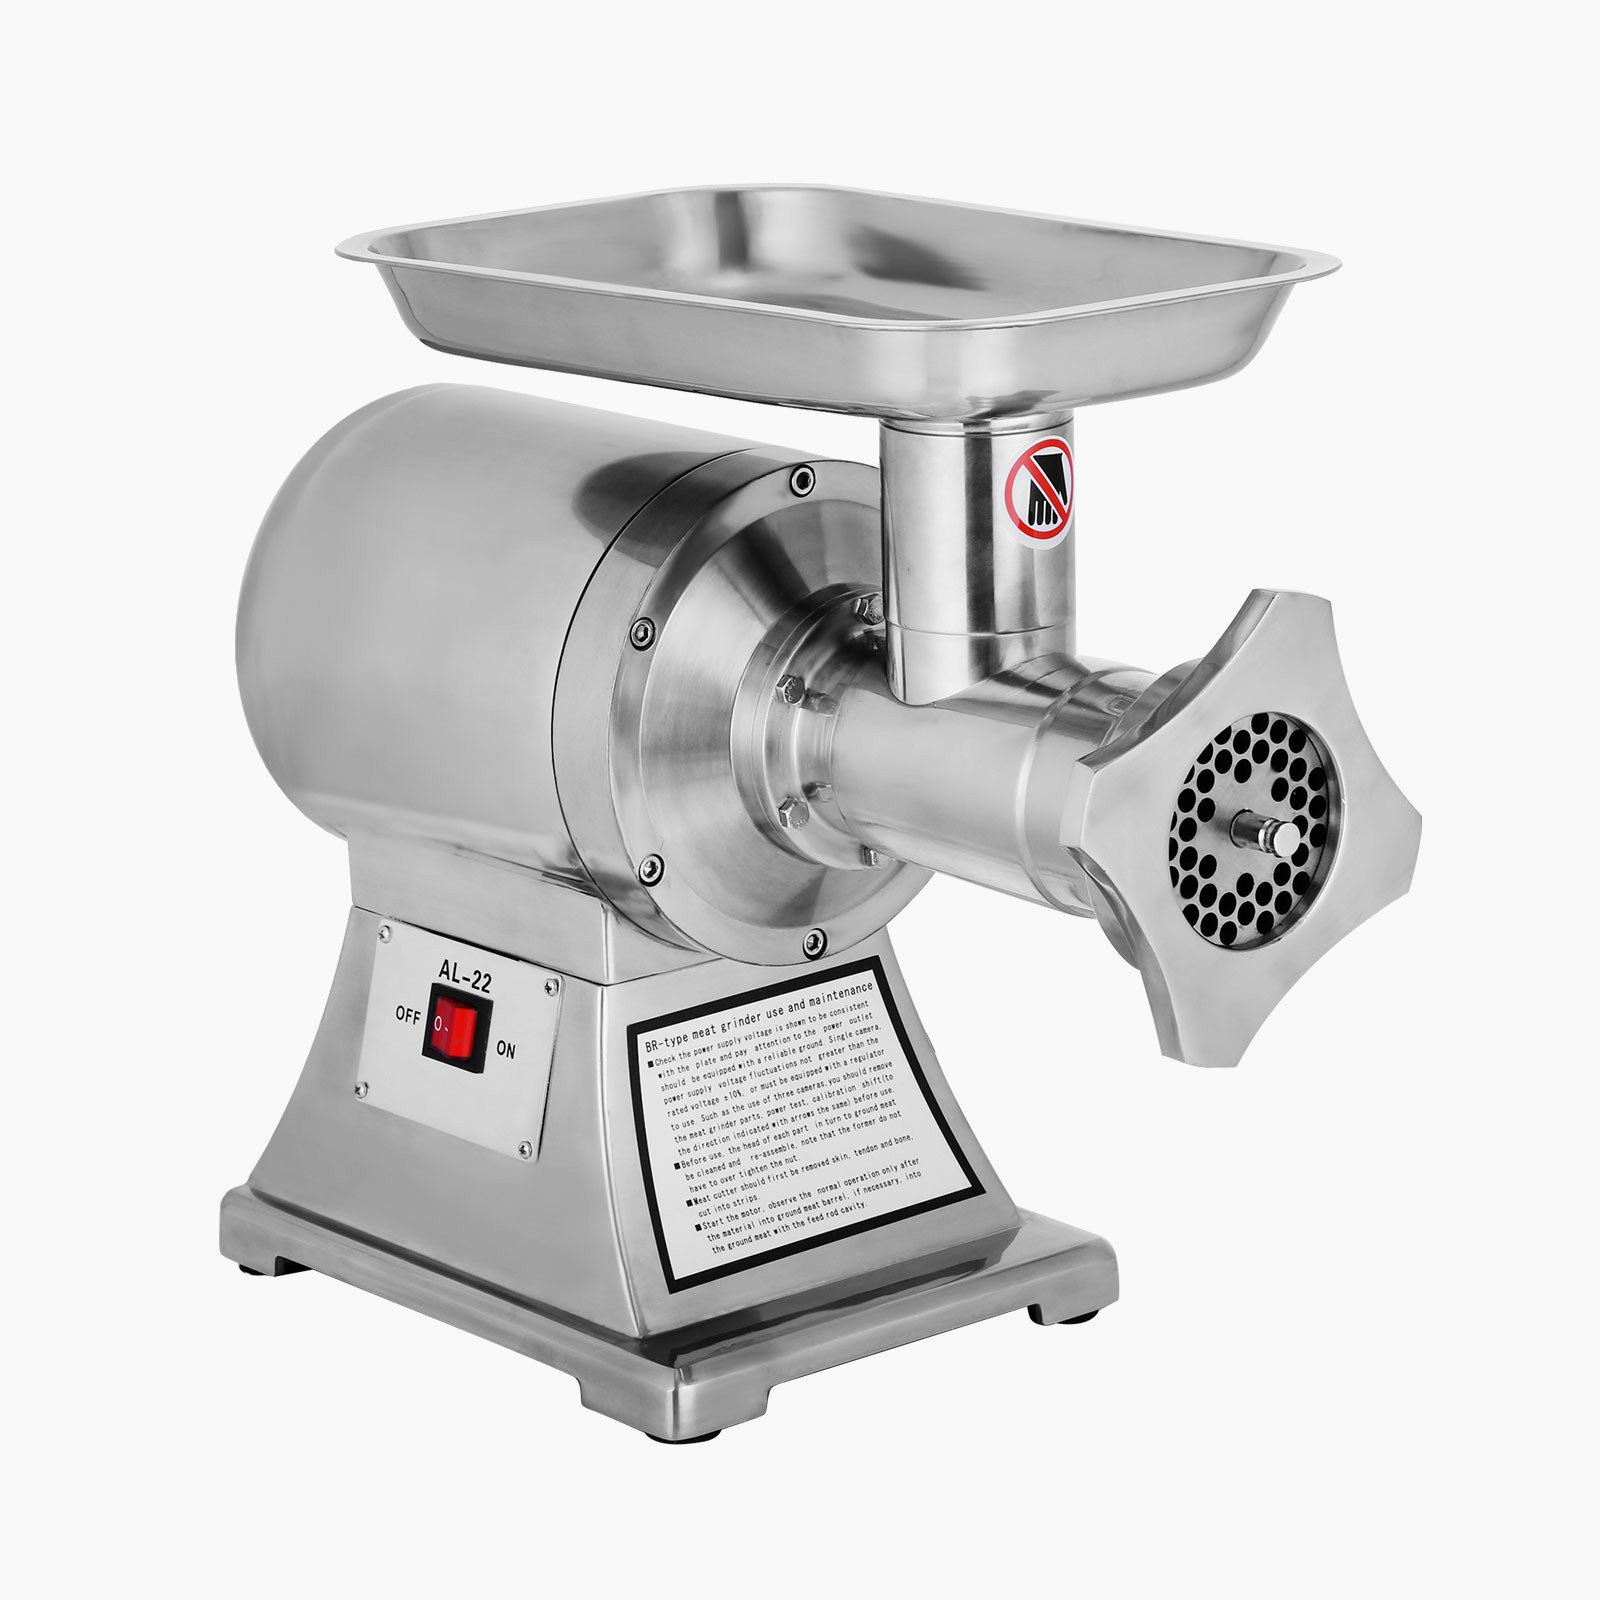 bb2c9d3e3ab Get Quotations · Forkwin Meat Grinder 750W Meat Mincer 550LBS H Meat Mincer  Grinder 193 125 RPM